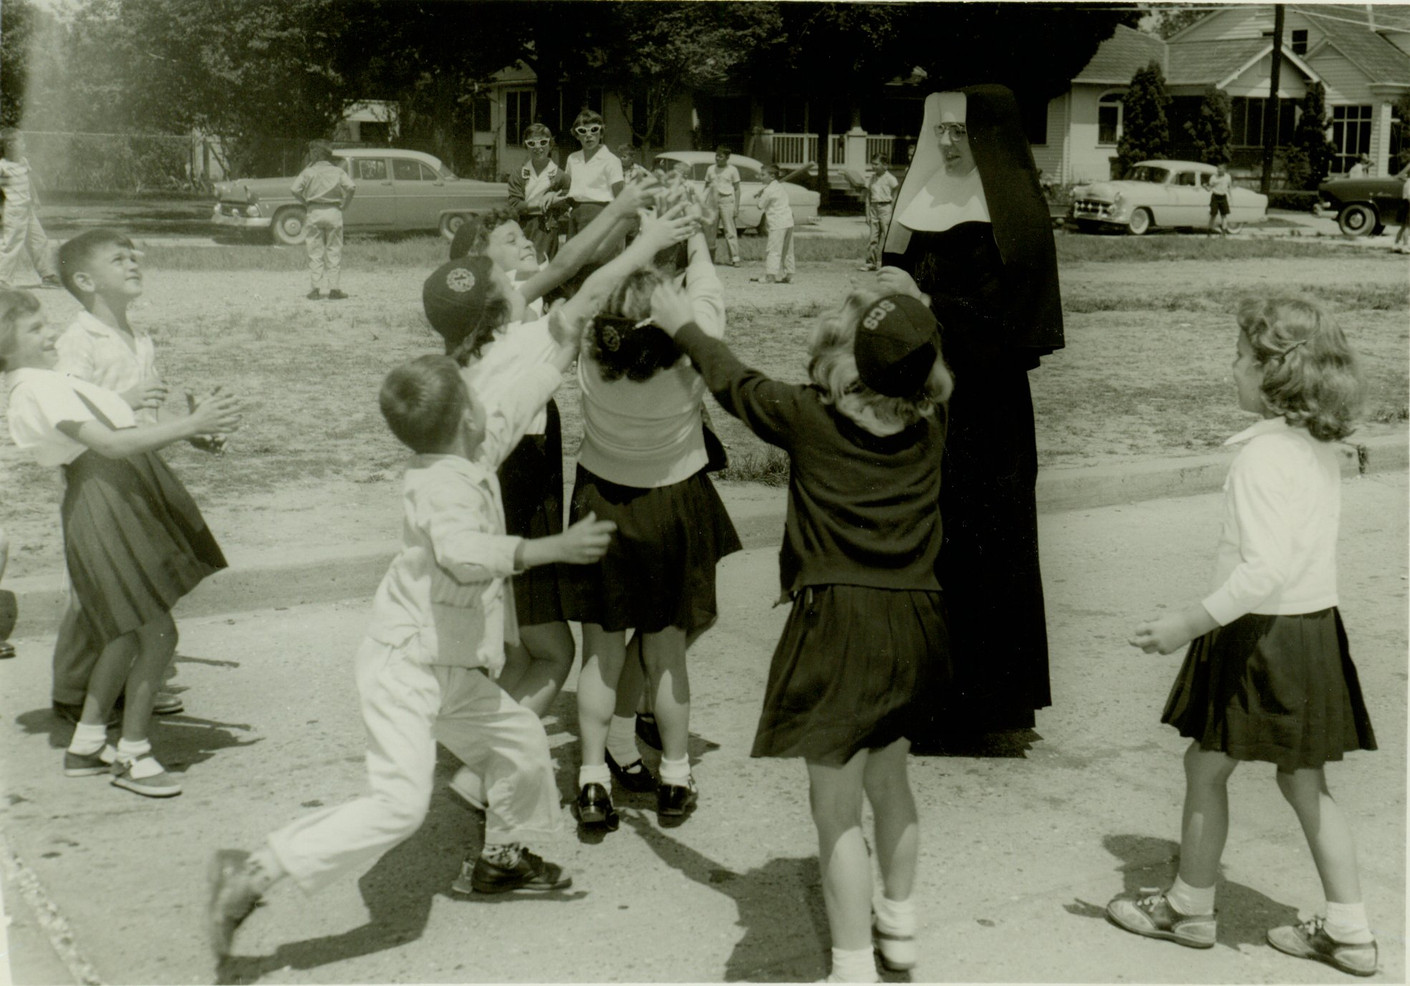 Incarnate Word Sisters also opened schools in New Orleans, including St. Francis de Sales School (1919), St. Catherine of Siena School (1926), and Archbishop Chappelle High School, opened in 1962. Pictured is Sr. Annella Conway at St. Catherine of Siena, 1959.